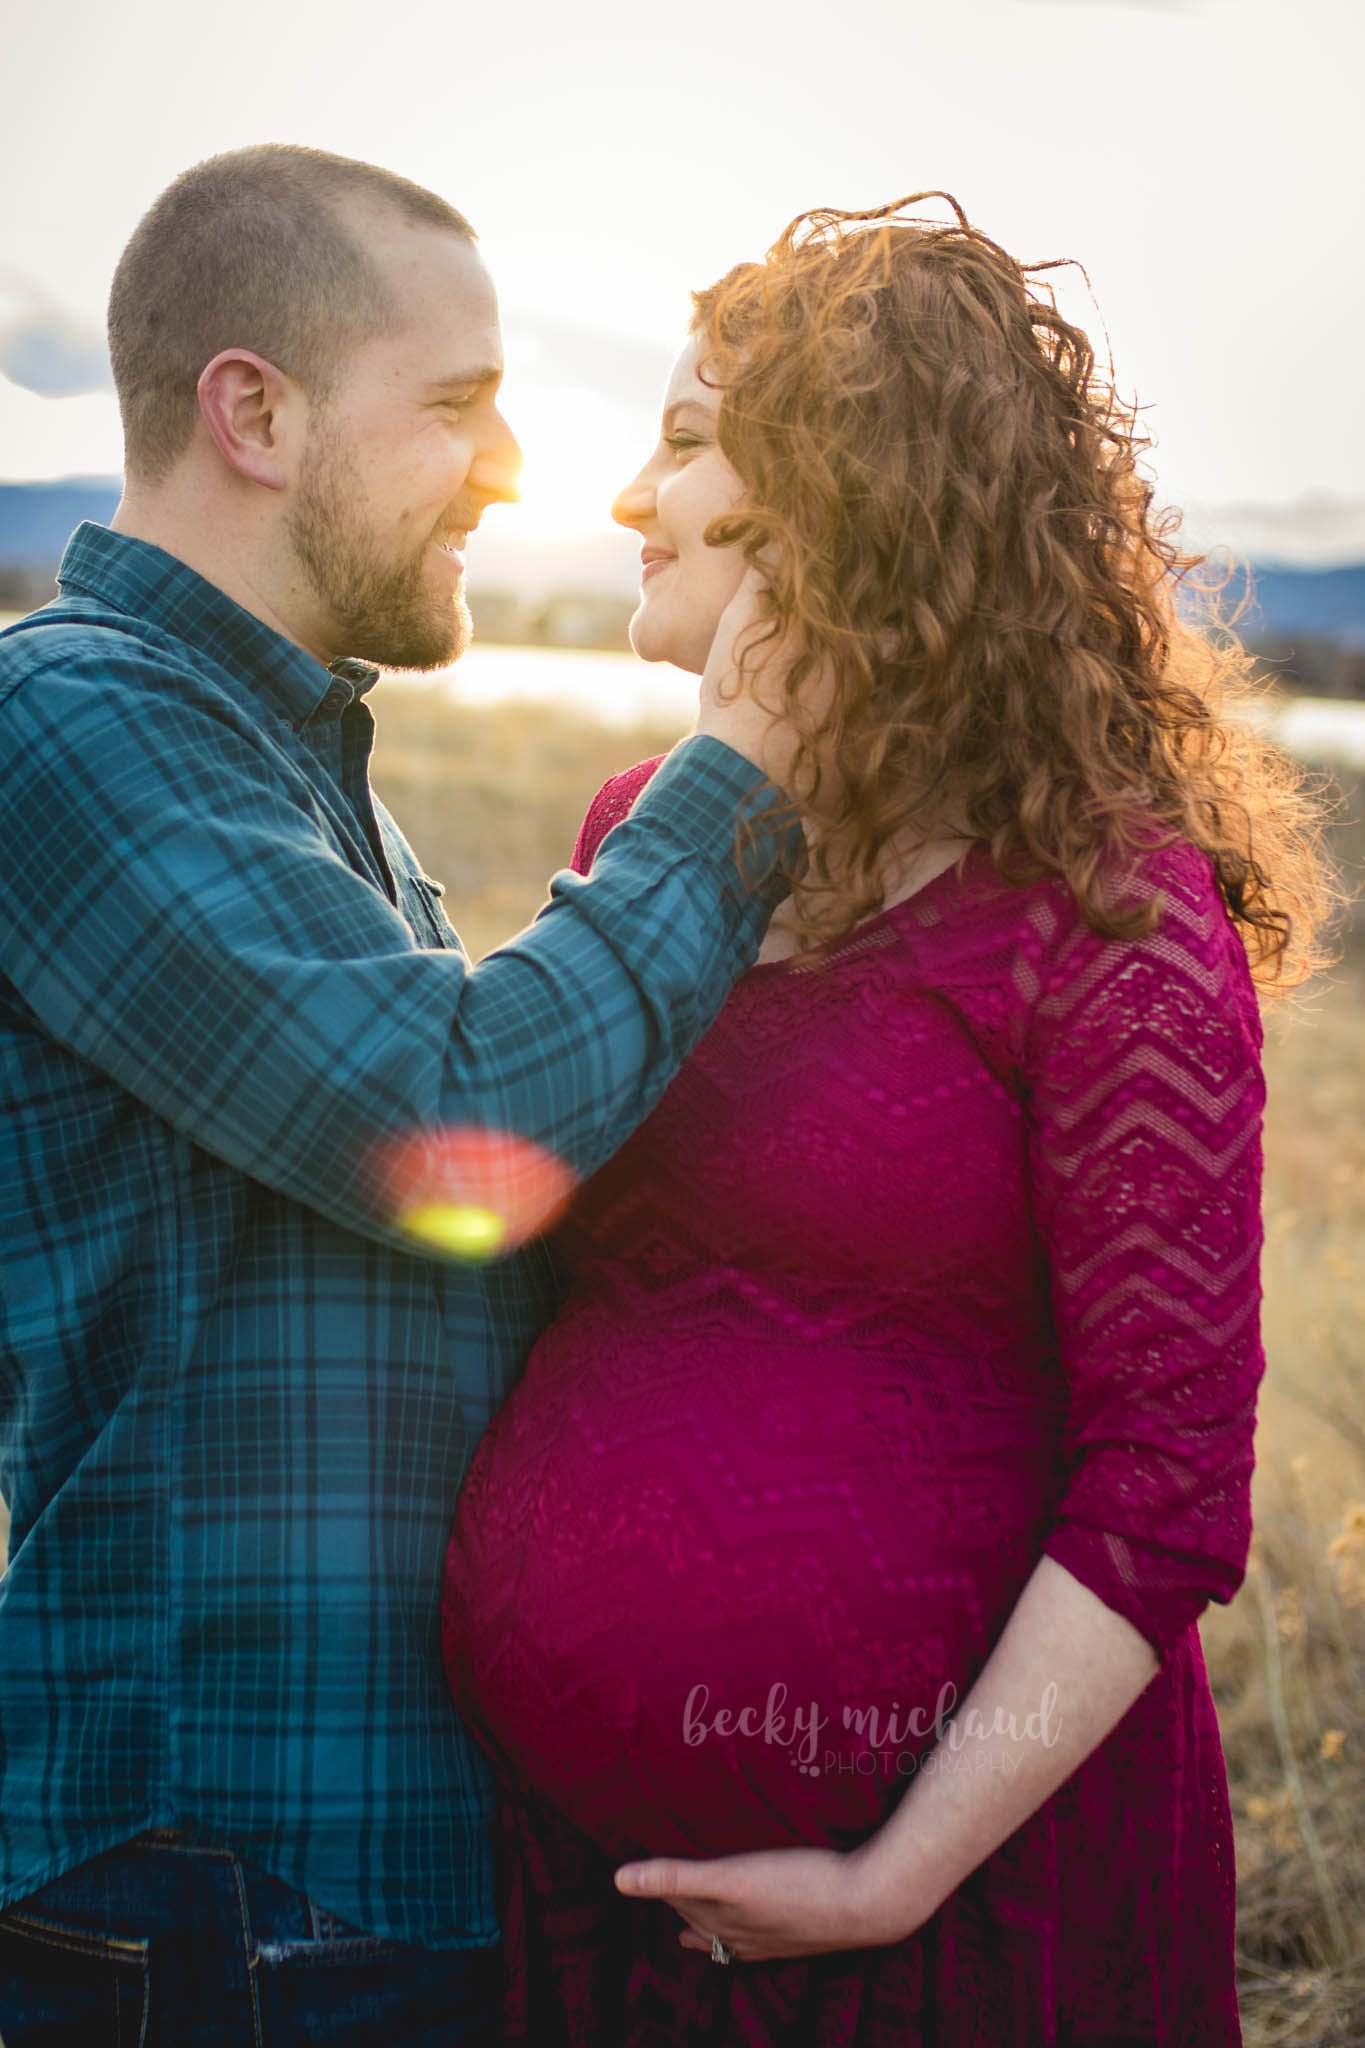 maternity photo taken by Becky Michaud, Northern Colorado photographer